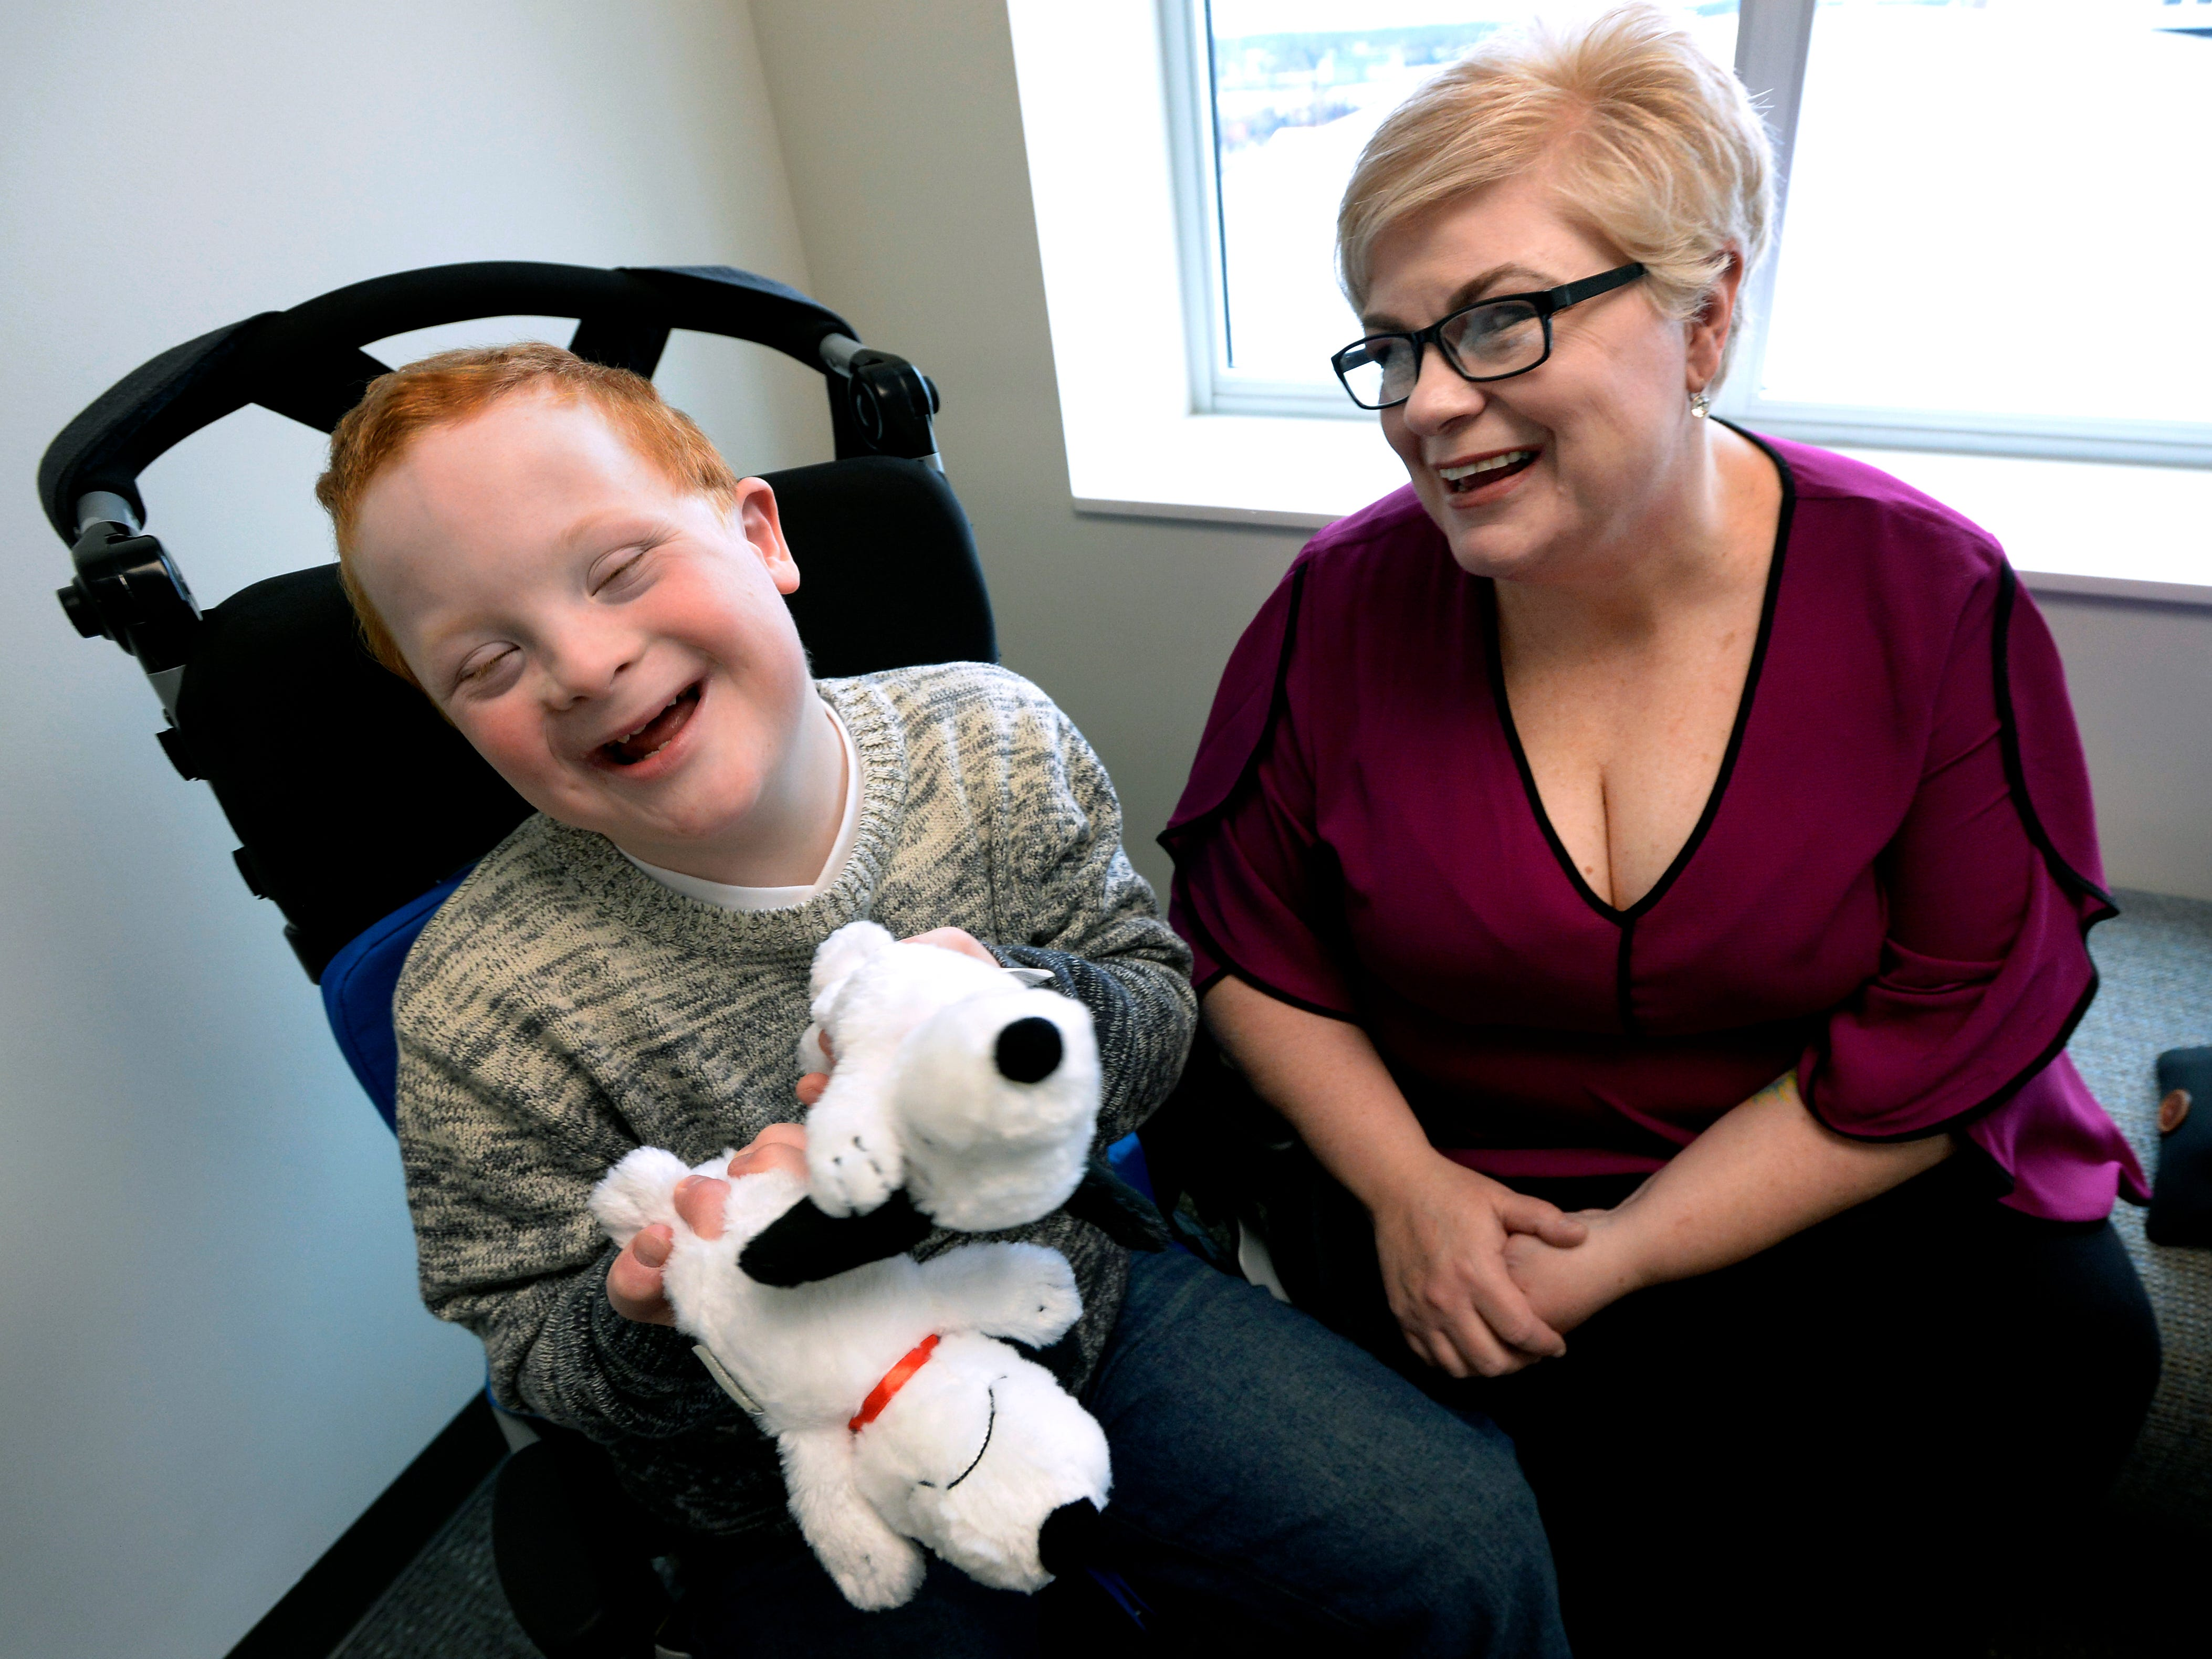 Single mother Jennifer Schultz laughs with her son Hatcher Ryan, 10, who has Down Syndrome, as they wait to talk with Tennessee State senators during Disability Day on the Hill Tuesday, Feb. 12, 2019, in Nashville, Tenn. Families and advocates of people with disabilities in Tennessee met with lawmakers to express concerns and the needs of the disabled in the state.